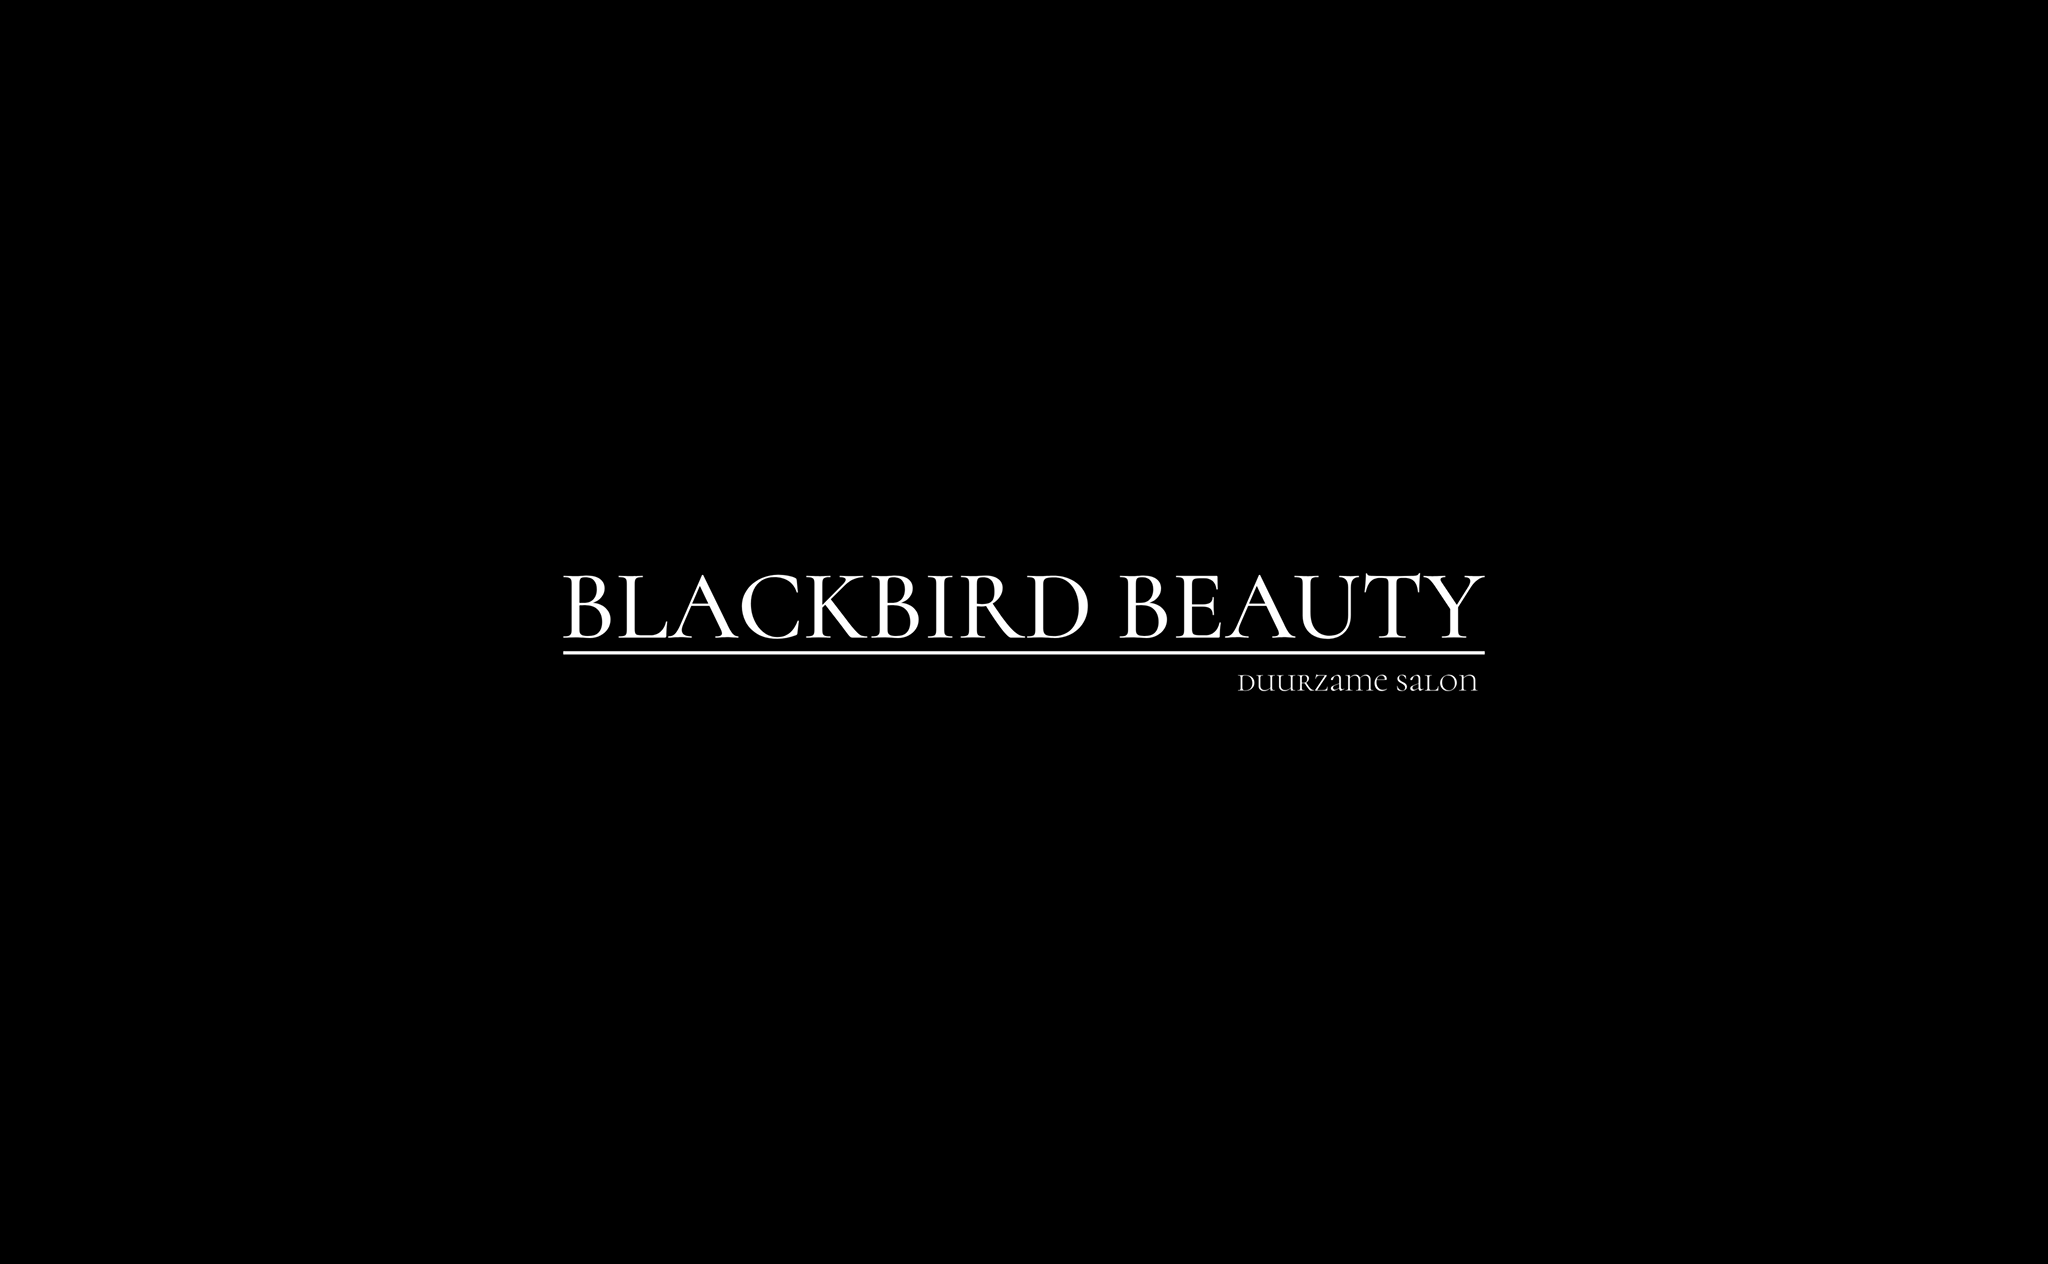 BlackBird Beauty